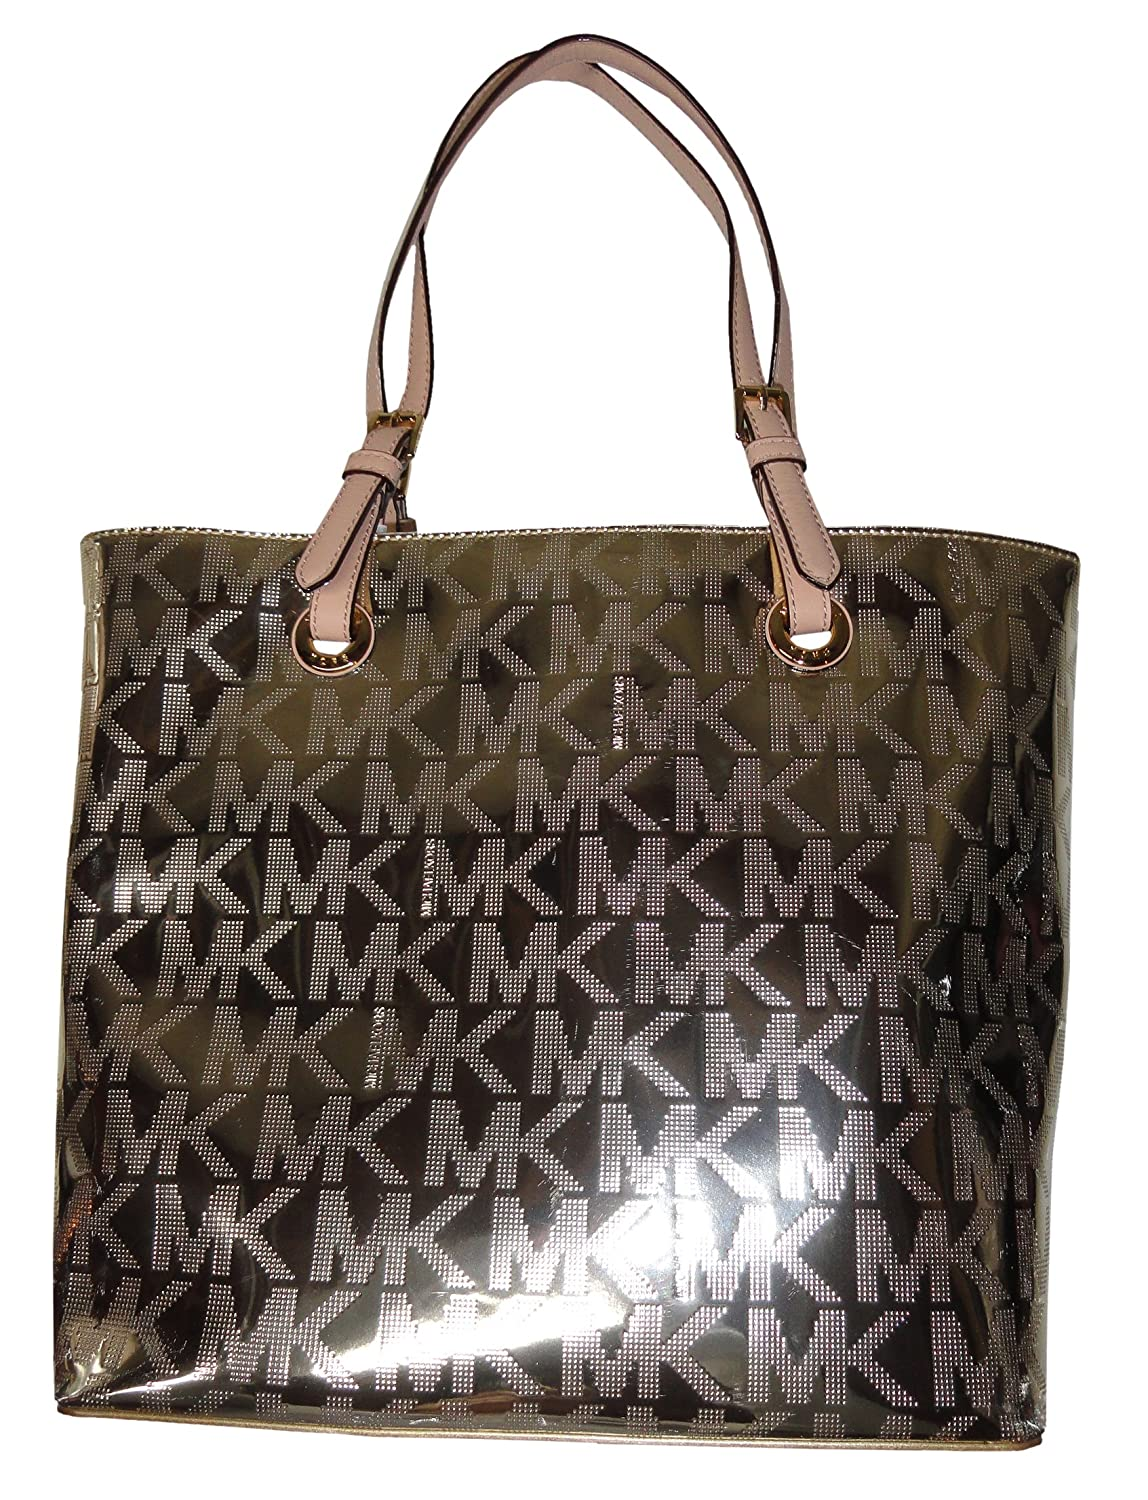 b80ffc0d298e Michael Kors Jet Set Item Grab Bag Signature Tote Mirror Metallic Pale Gold:  Handbags: Amazon.com